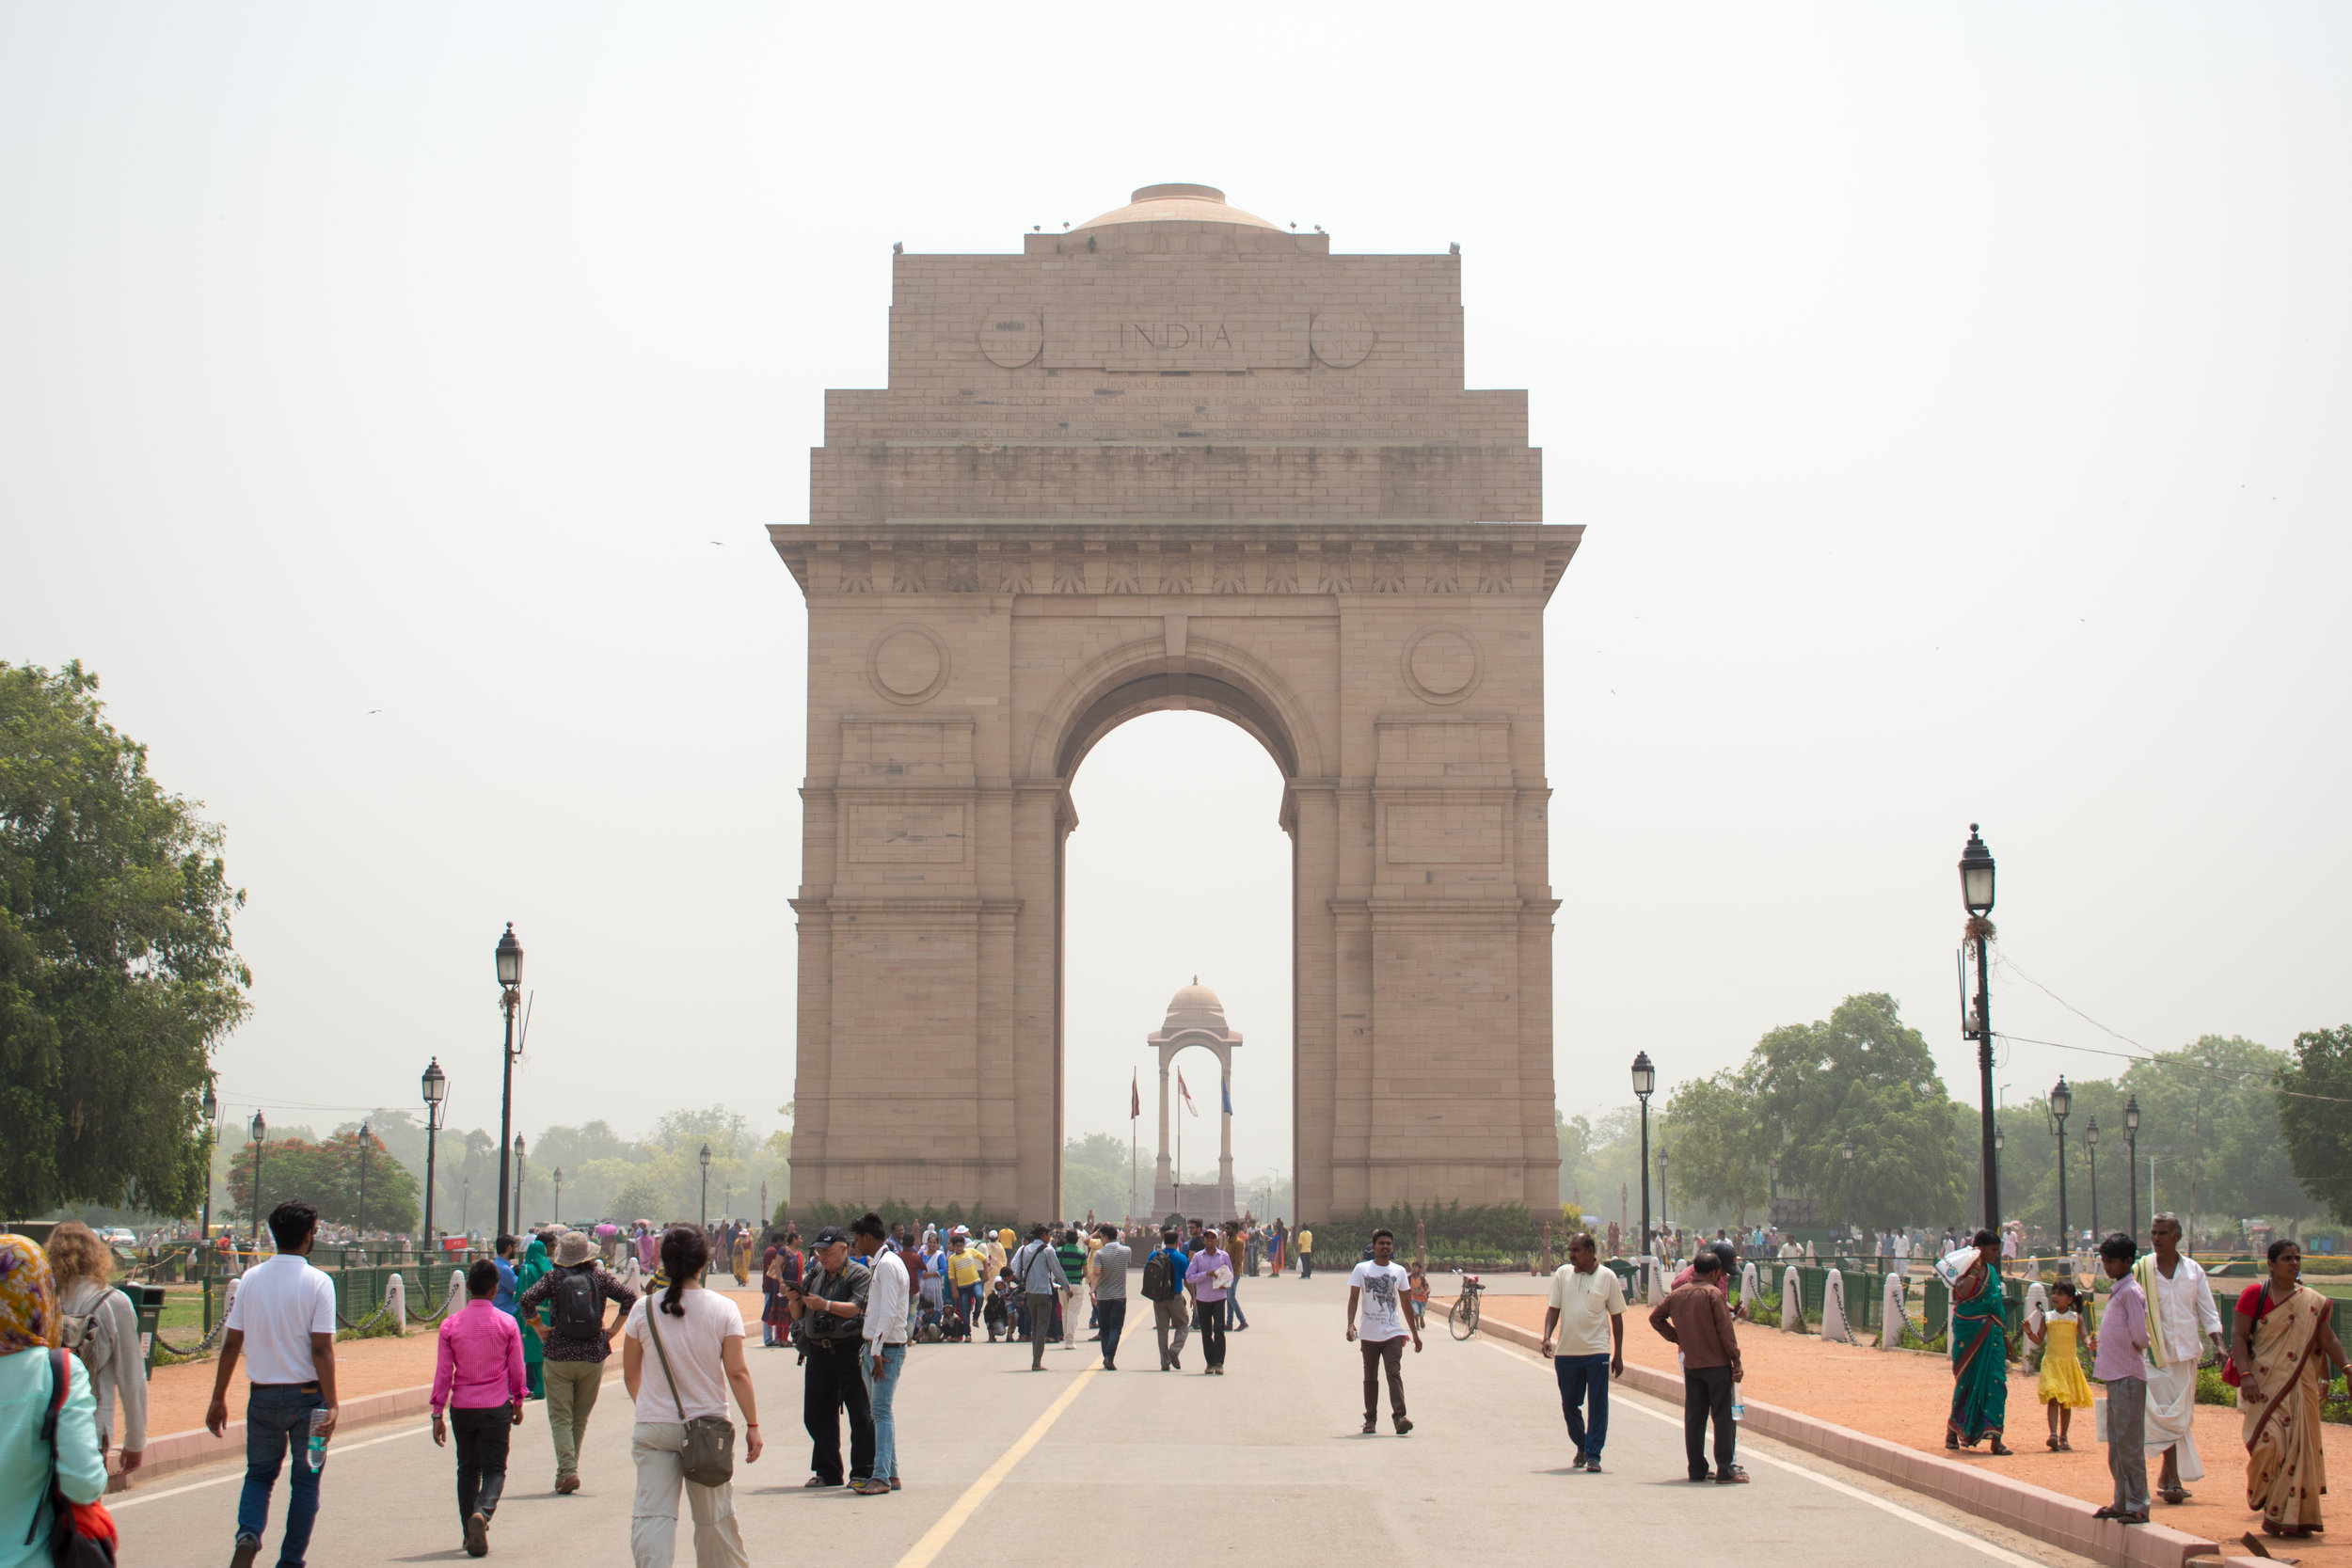 India Gate, Delhi in India